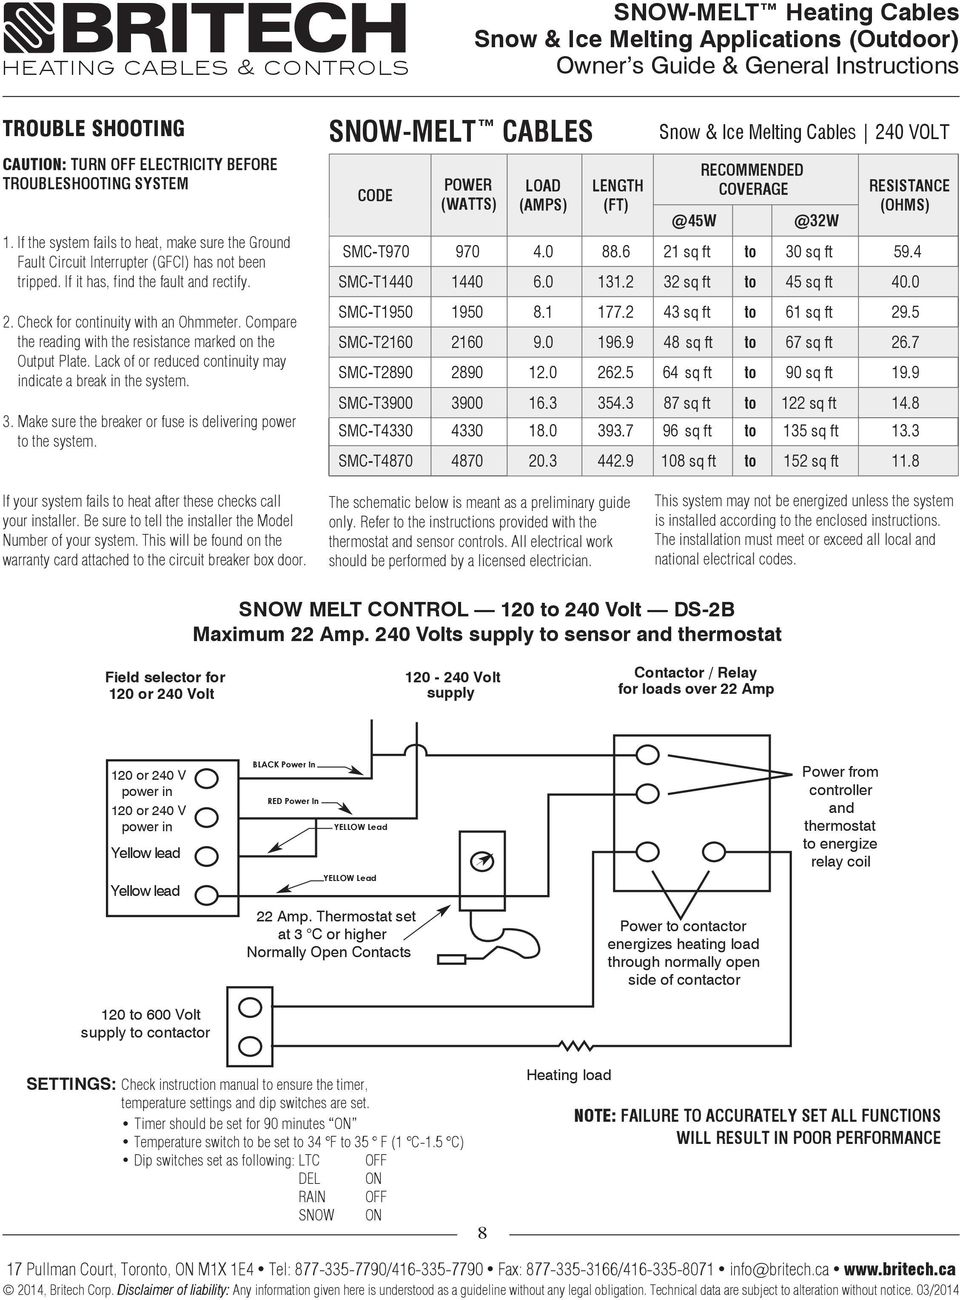 Snow Melt Heating Cables Ice Melting Applications Outdoor Pdf Led 120 240 Wiring Diagram Lack Of Or Reduced Continuity May Indicate A Break In The System 3 Make